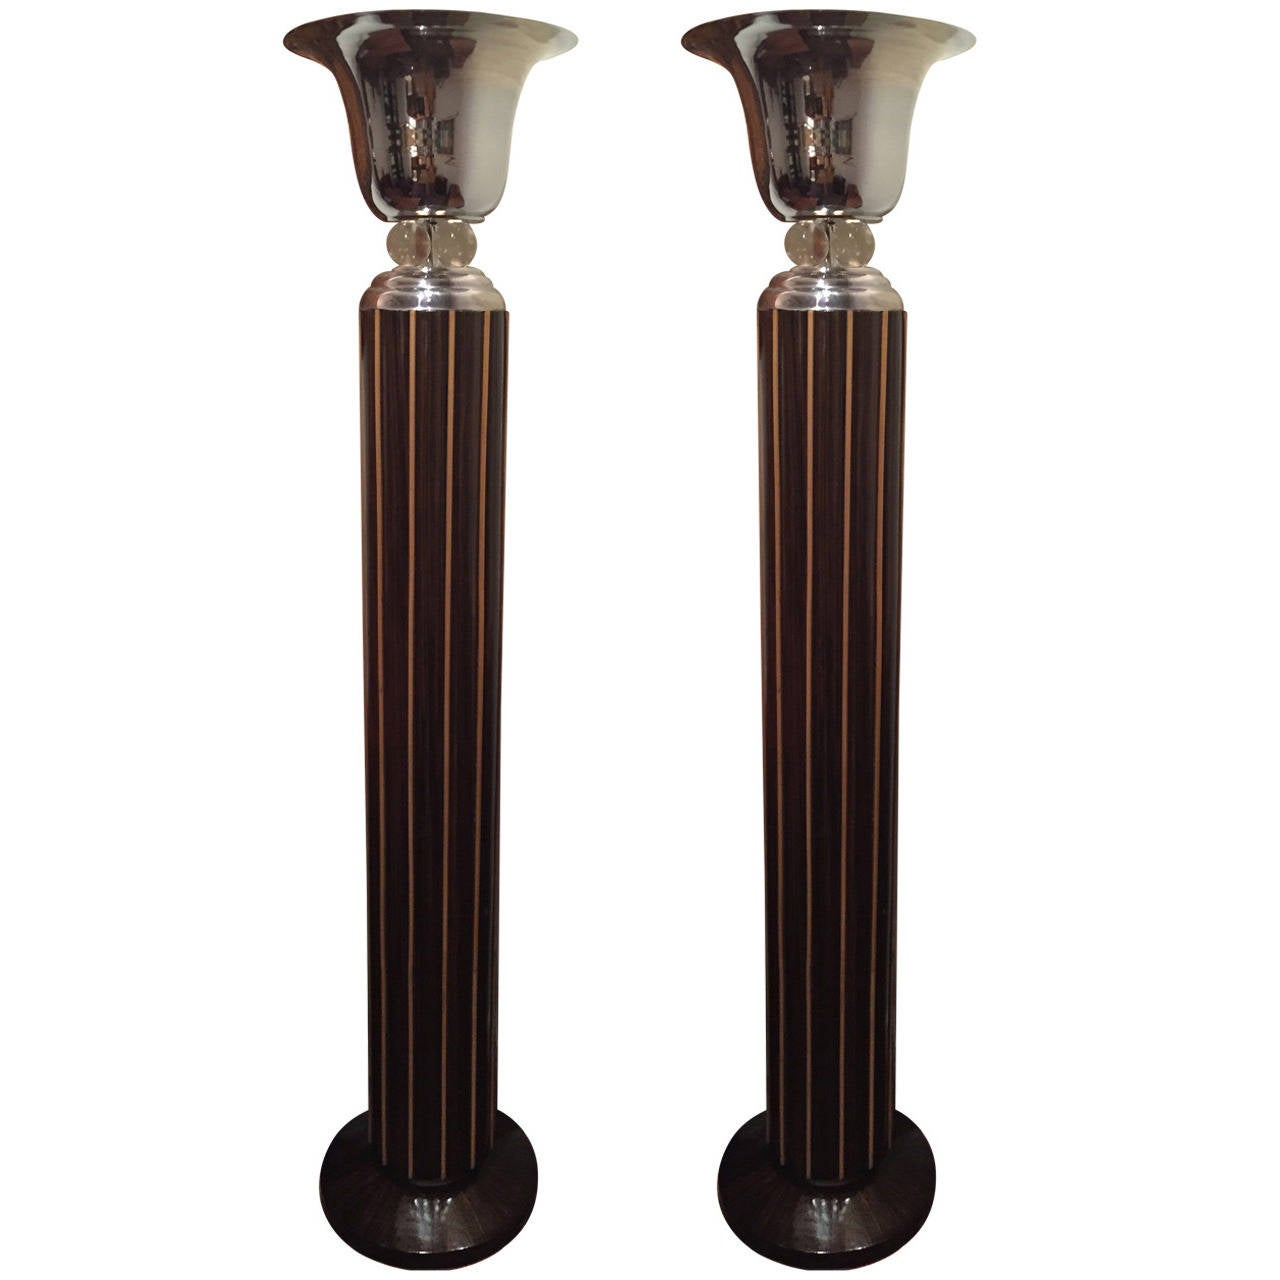 Spectacular art deco floor lamps in two tone wood for sale for Art deco style lamp